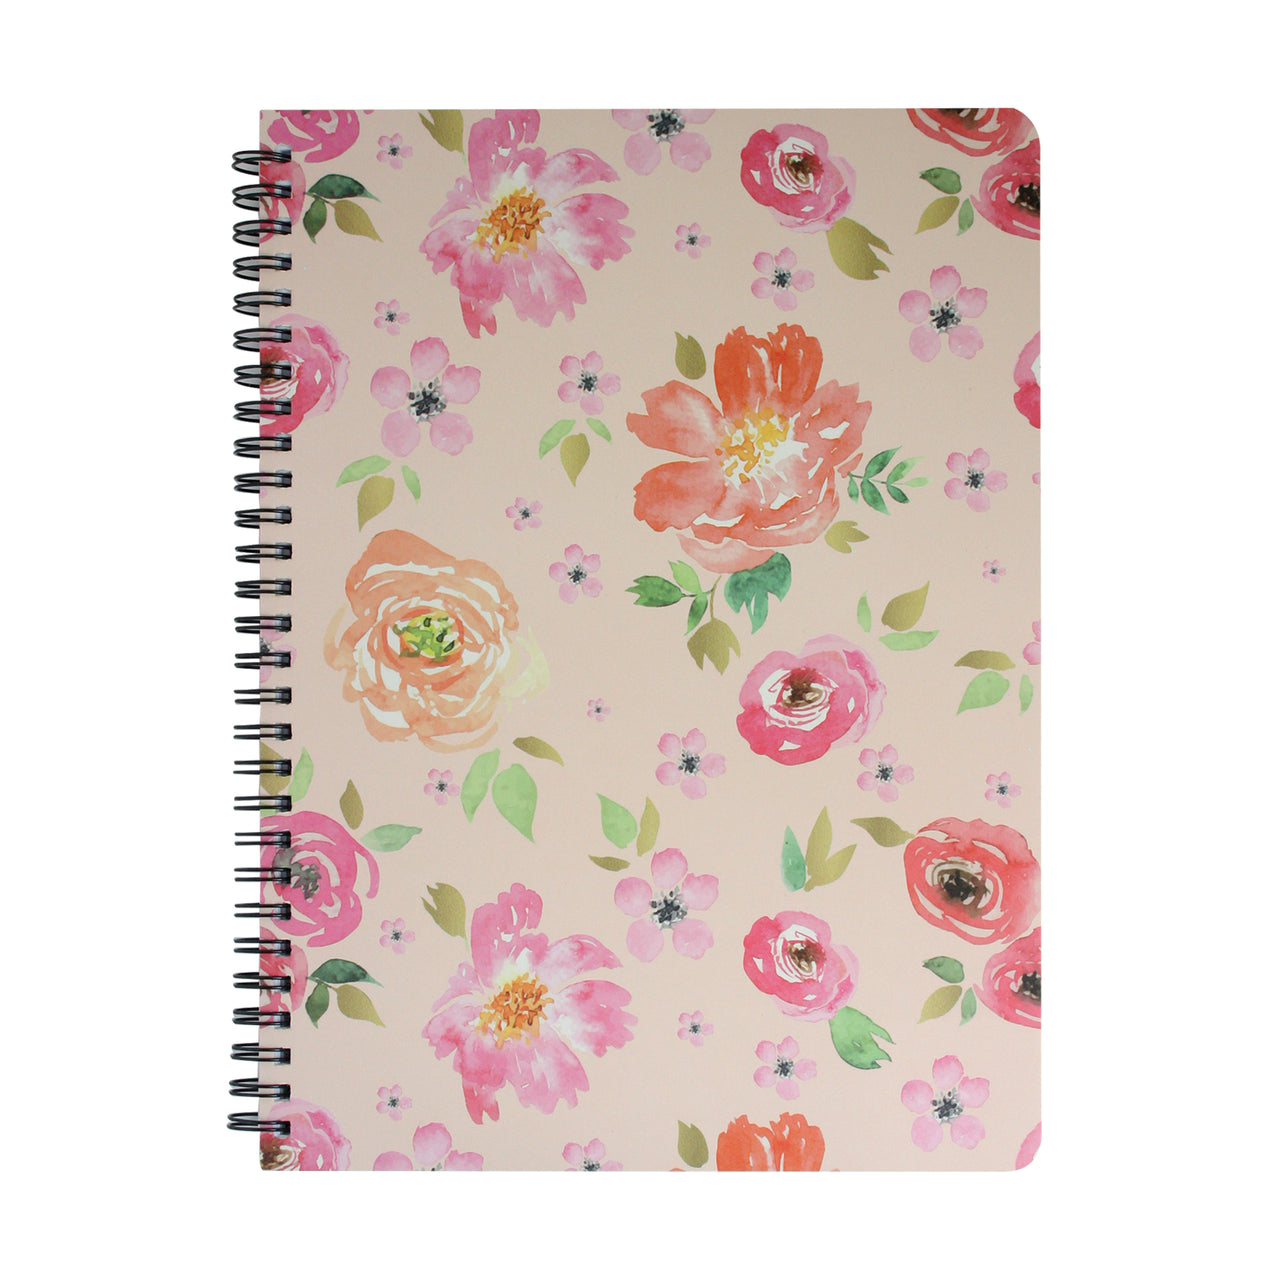 B5 Floral Notebook - Pink